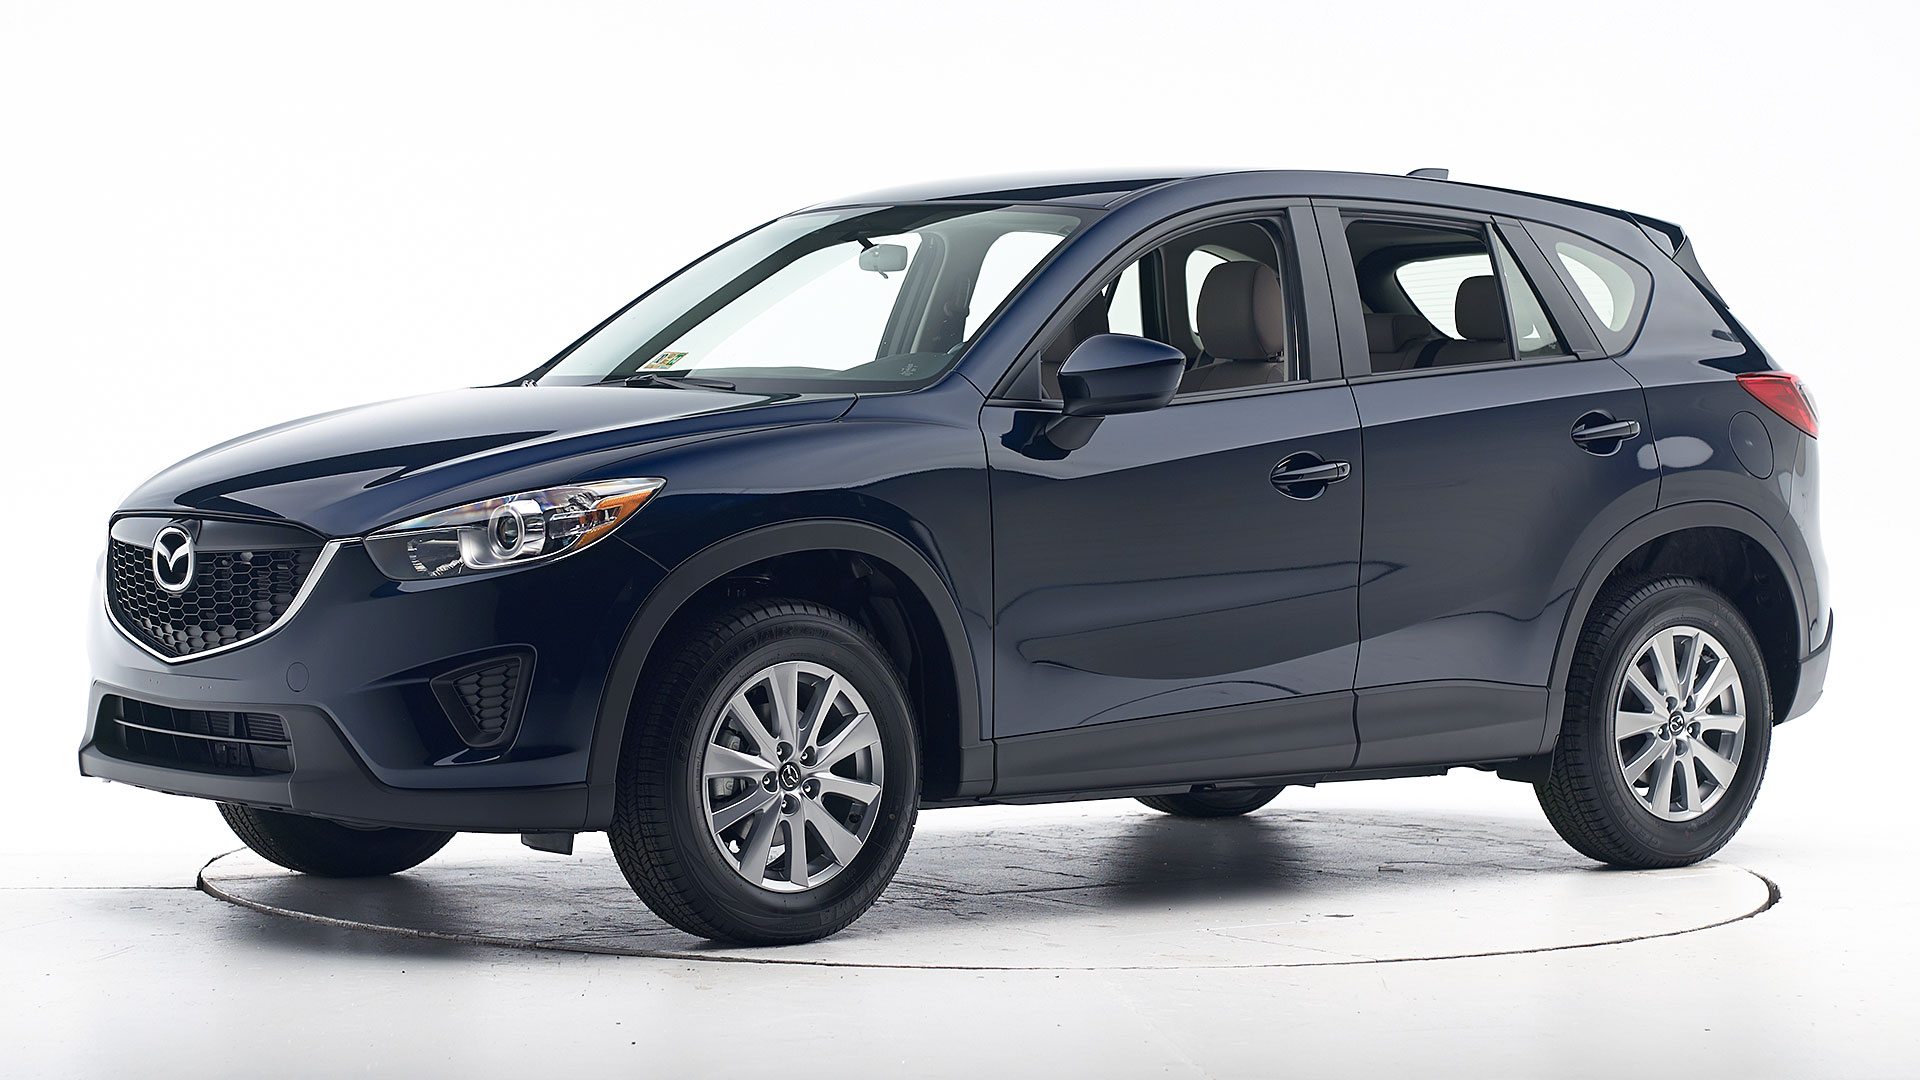 2015 Mazda CX-5 4-door SUV